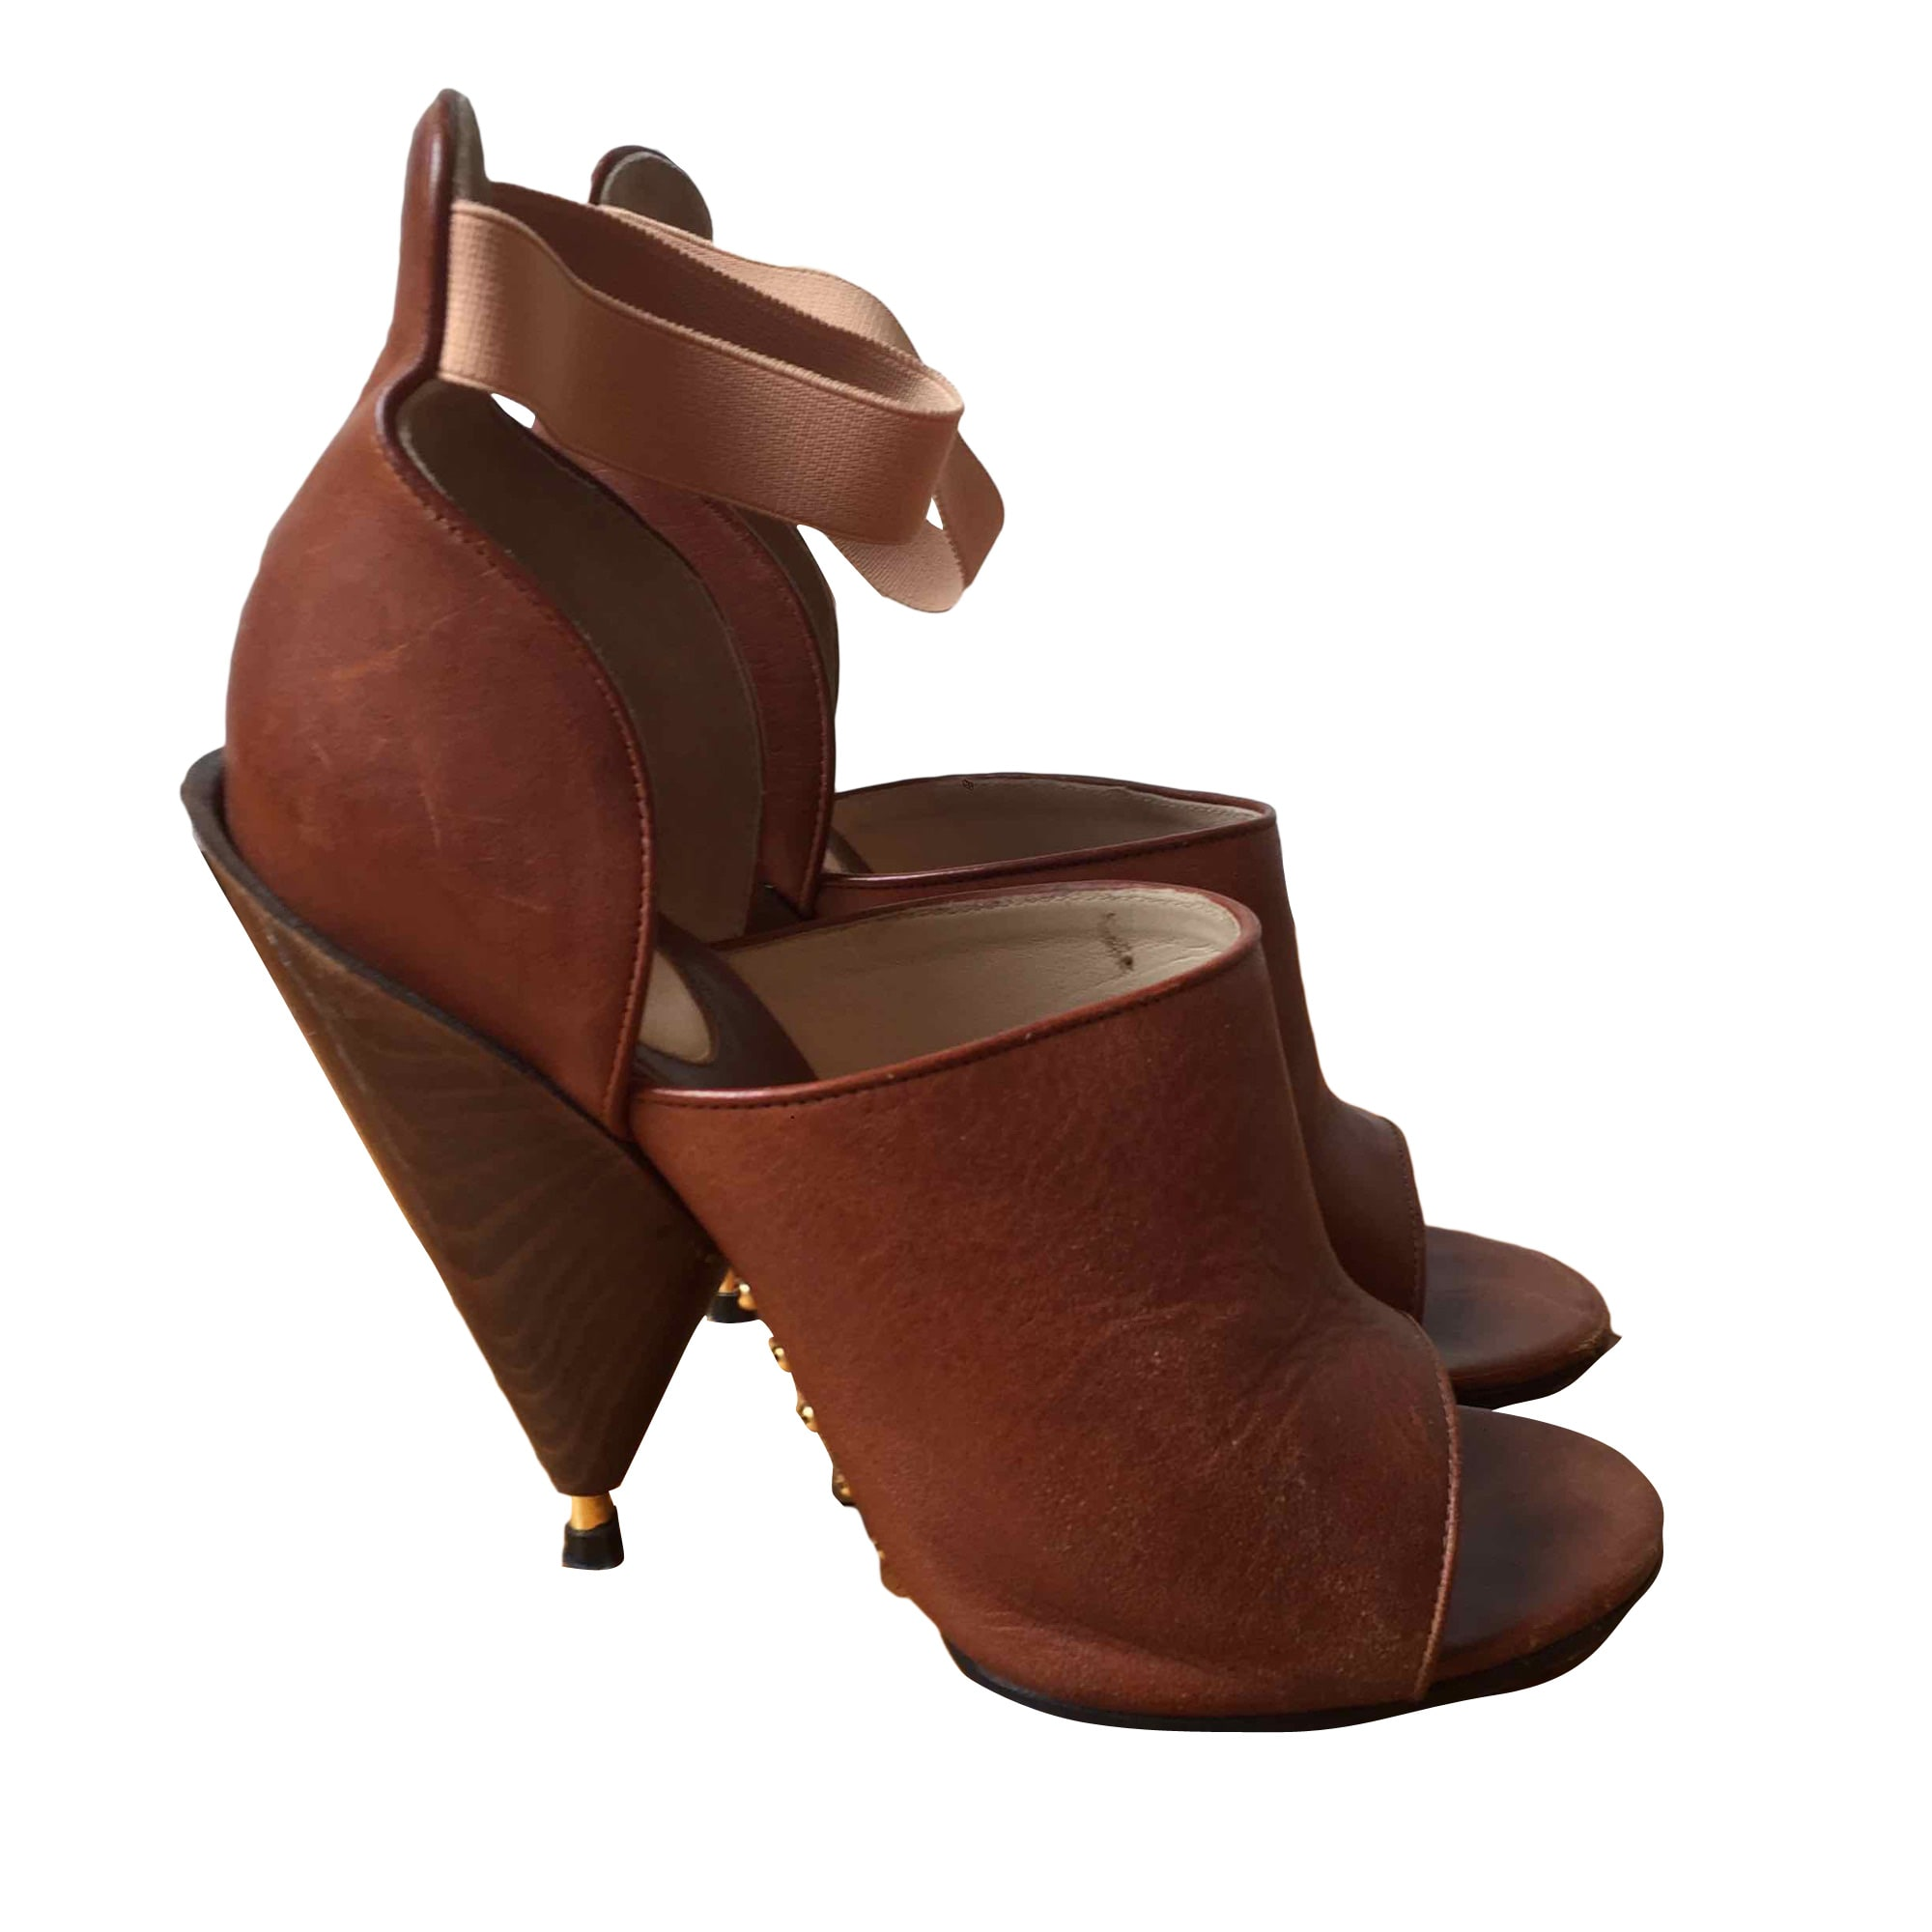 Heeled Sandals GIVENCHY Beige, camel